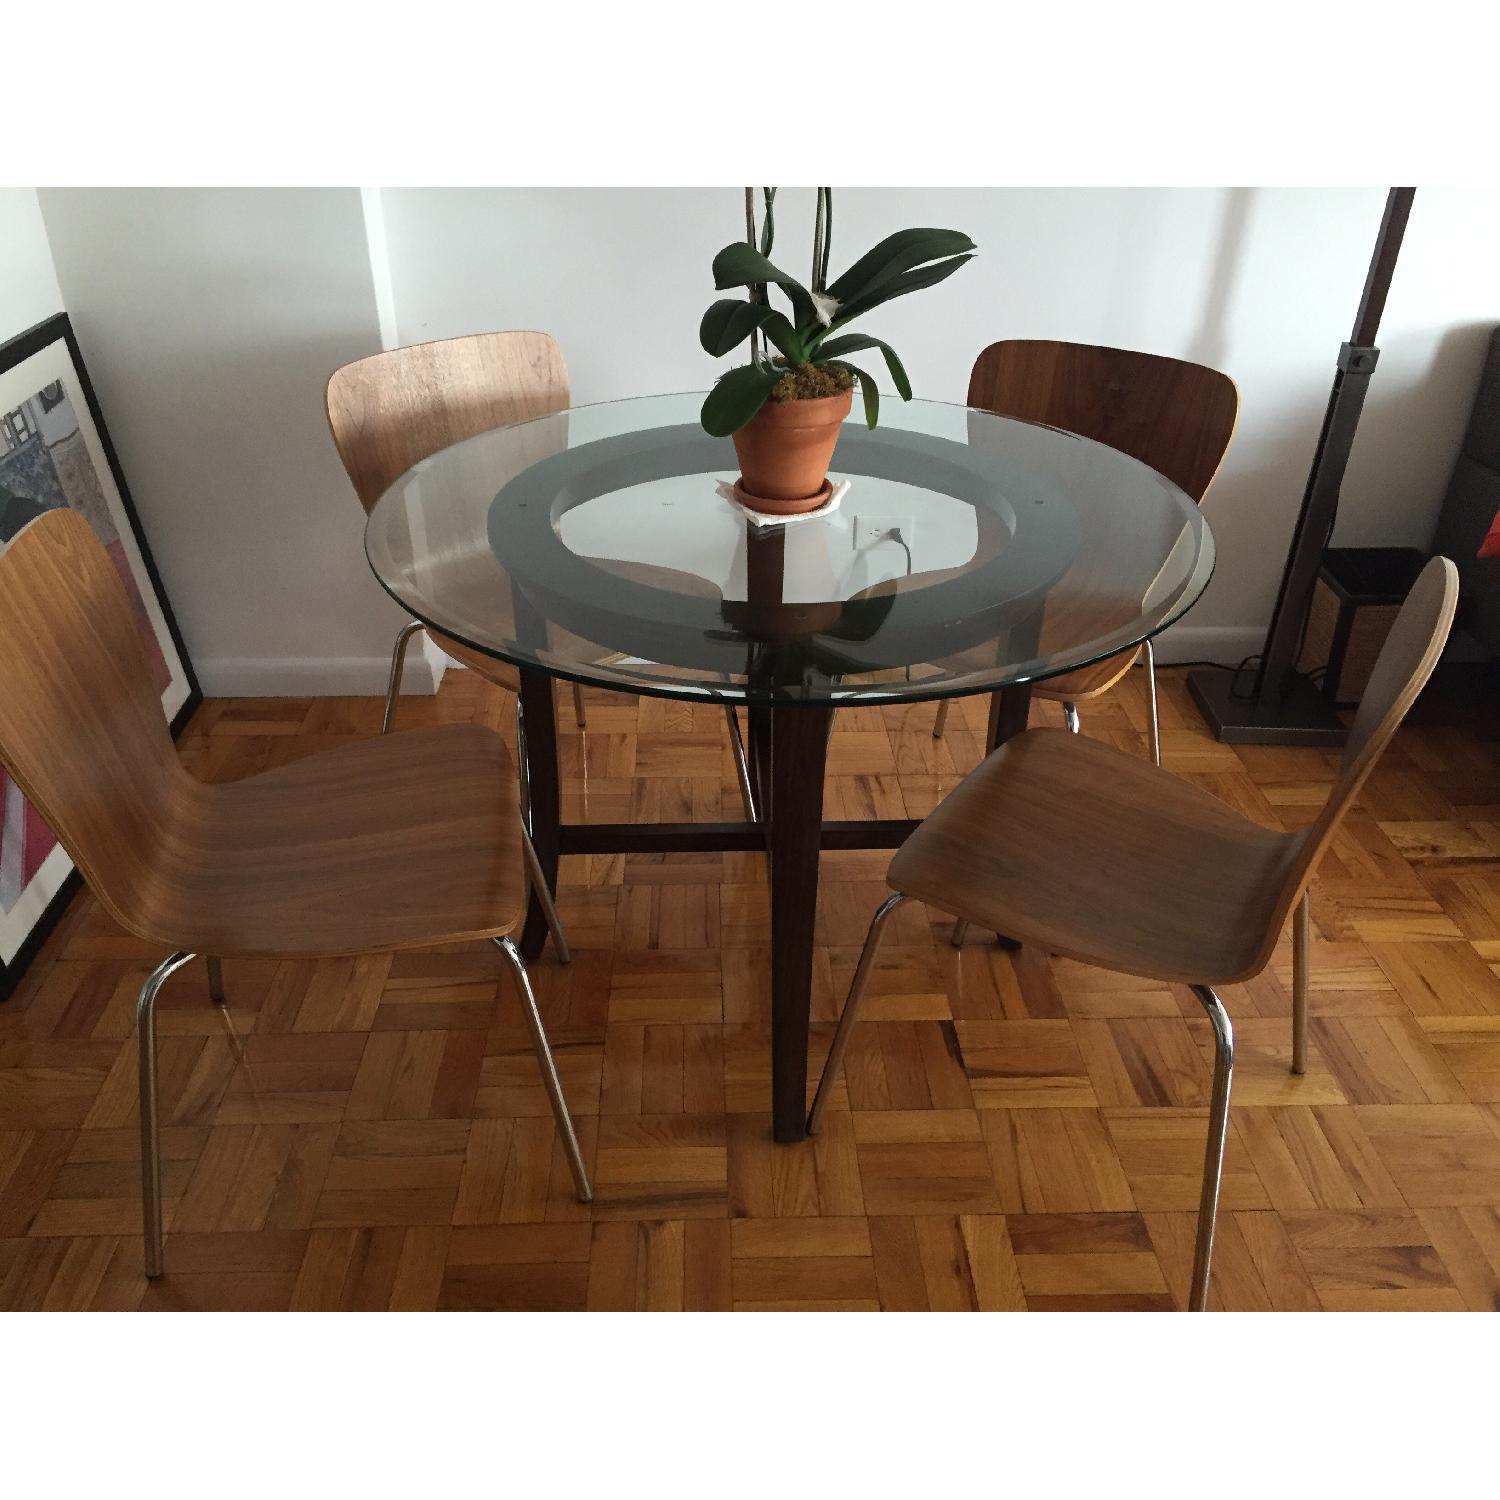 Crate & Barrel Halo Ebony Round Dining Table w/ Glass Top - image-1